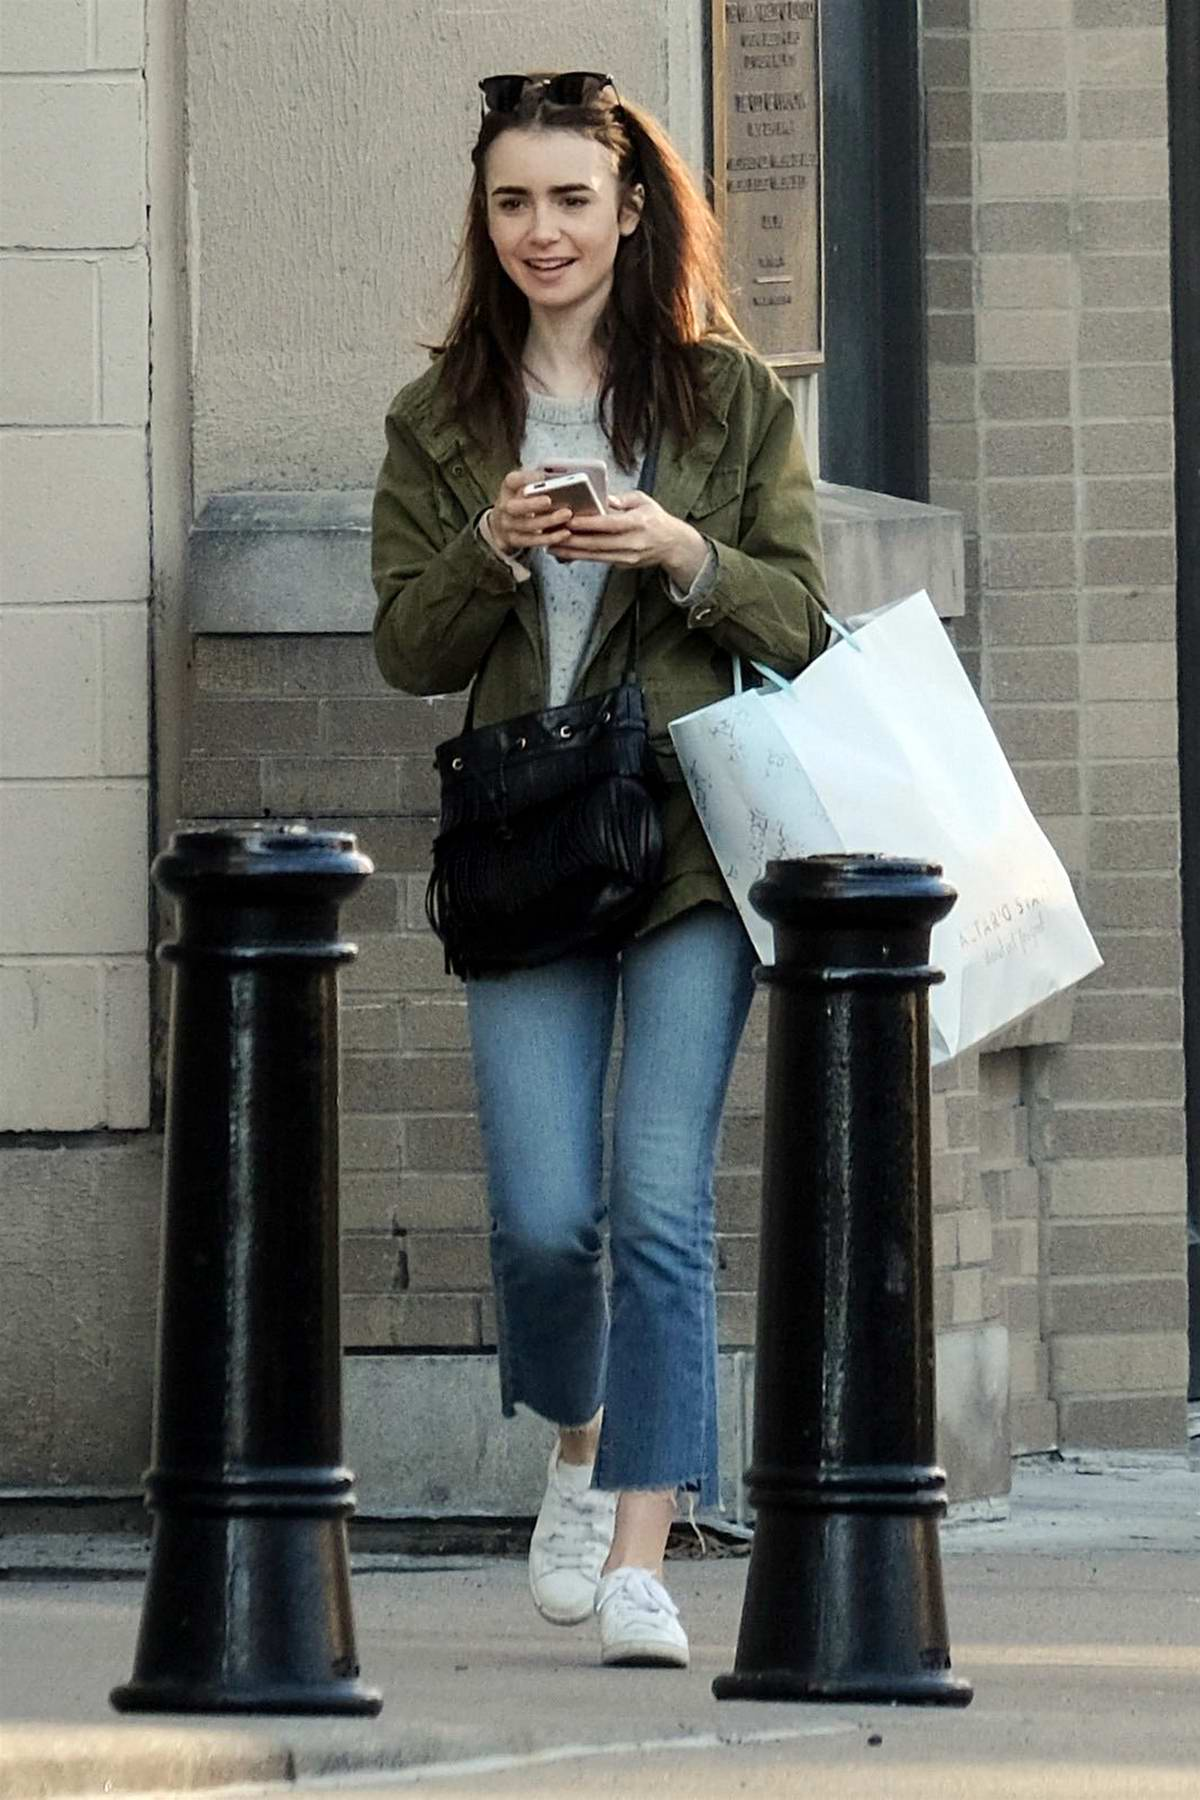 Lily Collins is spotted out shopping on her day off from filming in Cincinnati, Ohio